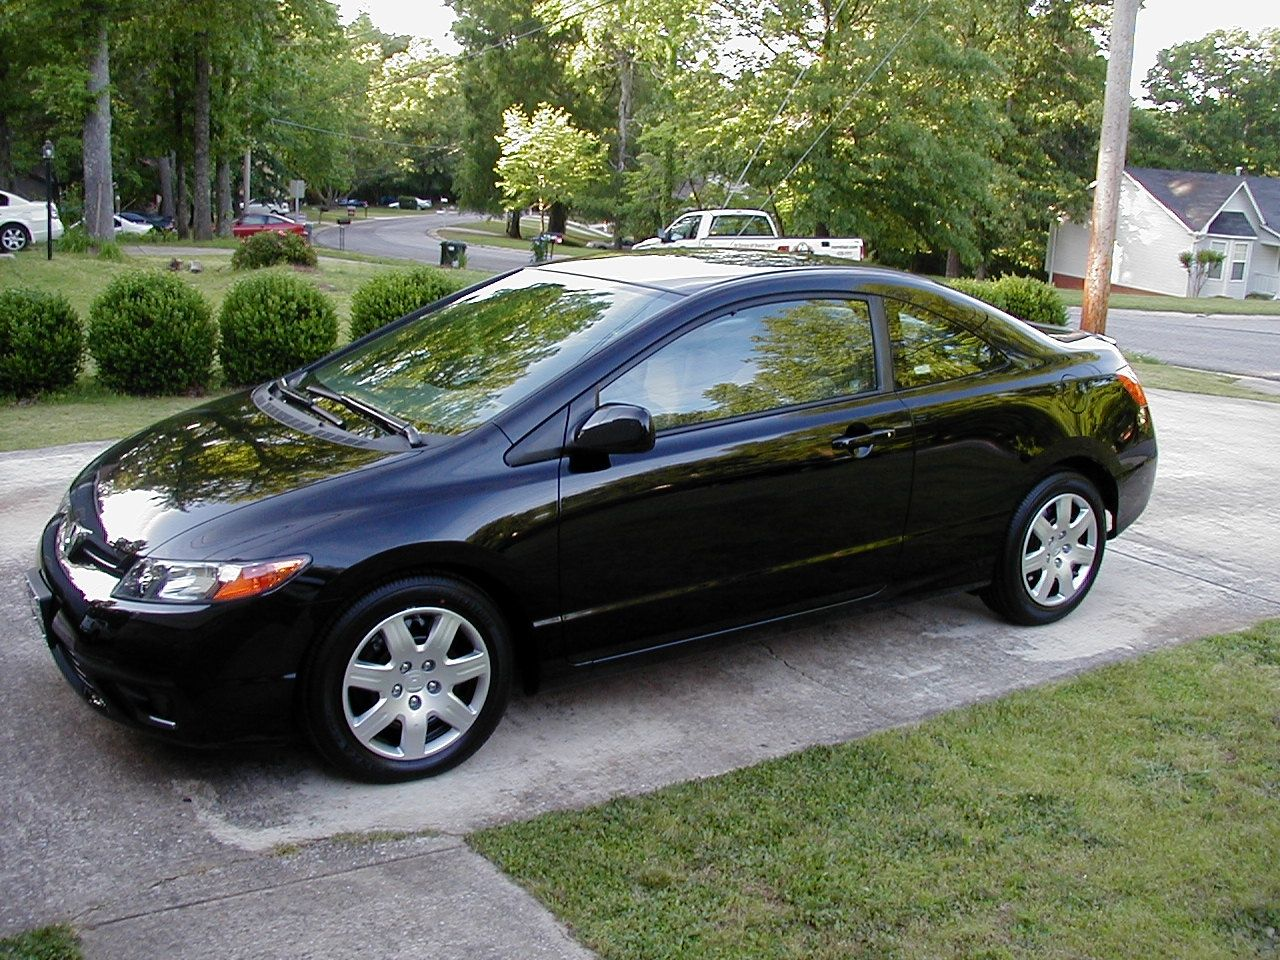 2008 Honda Civic Coupe . Black